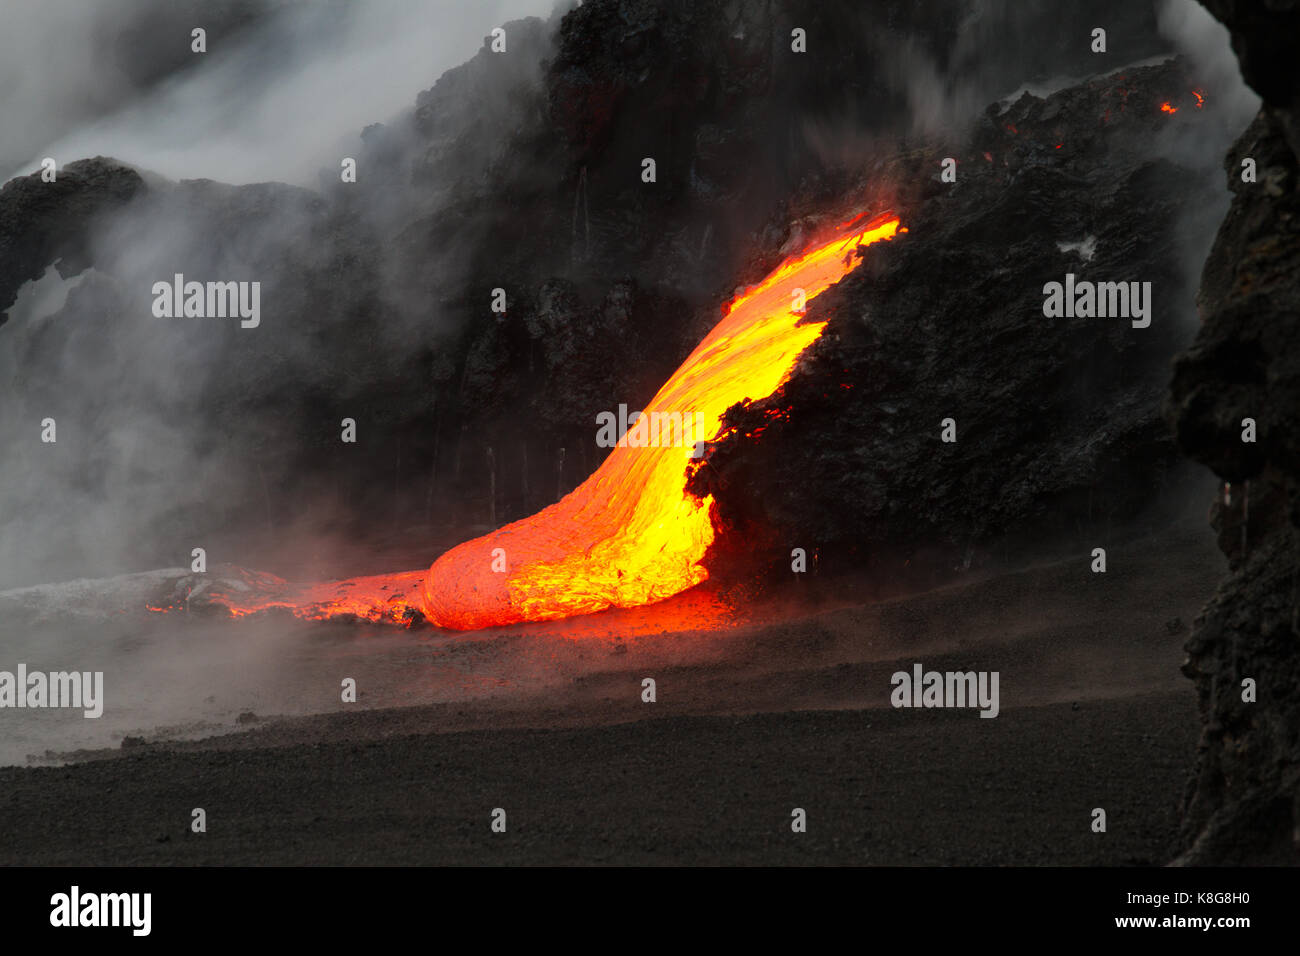 Lava flow at night in Hawaii - Stock Image